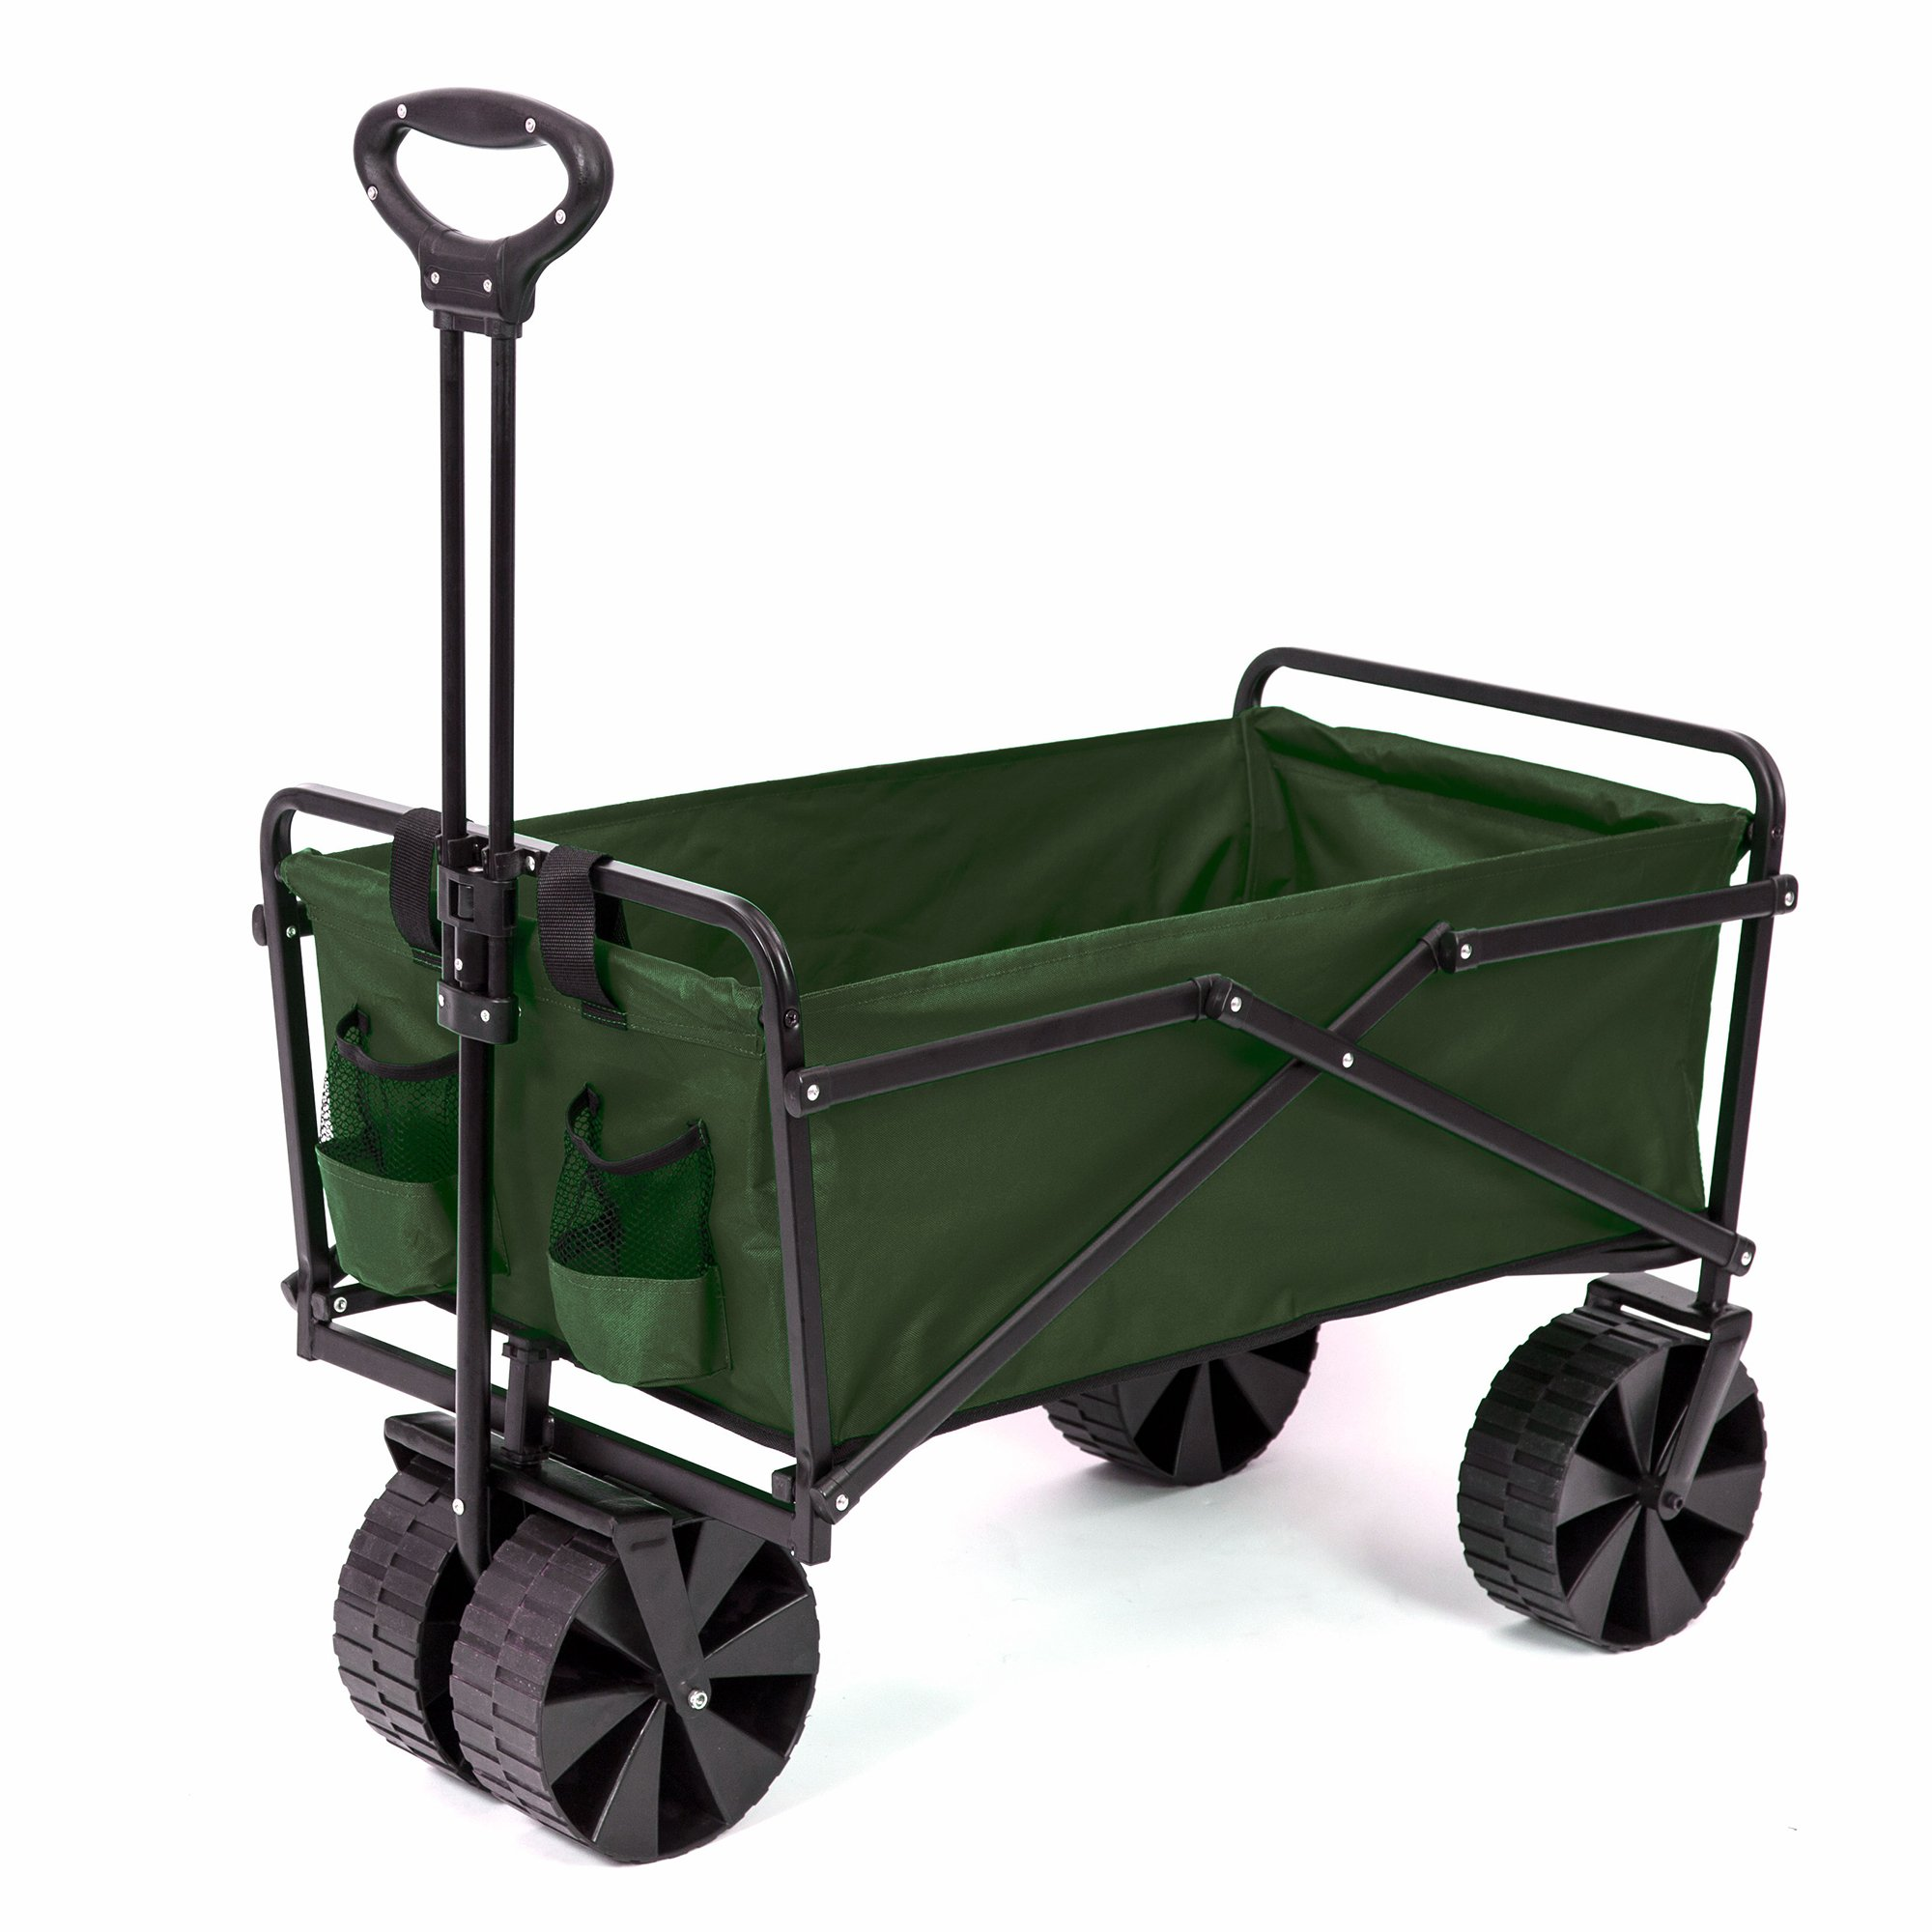 Seina Collapsible Utility Beach Wagon and Cart, Green by Seina